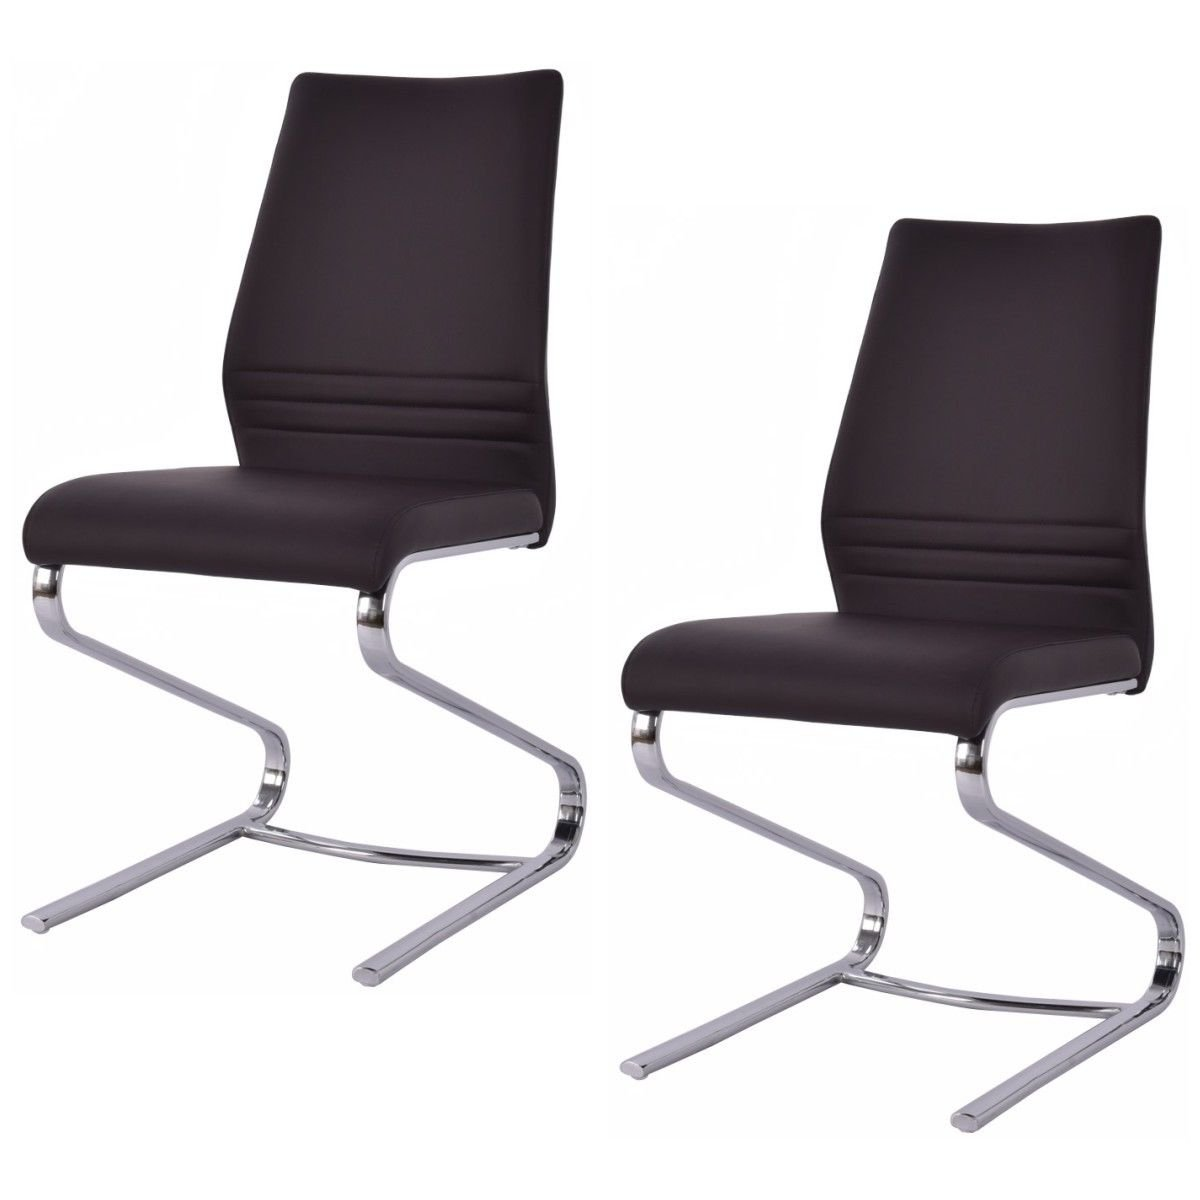 Giantex Set Of 2 Dining Chairs PU Leather High Back Modern Elegant Design Home Furniture (2Brown)